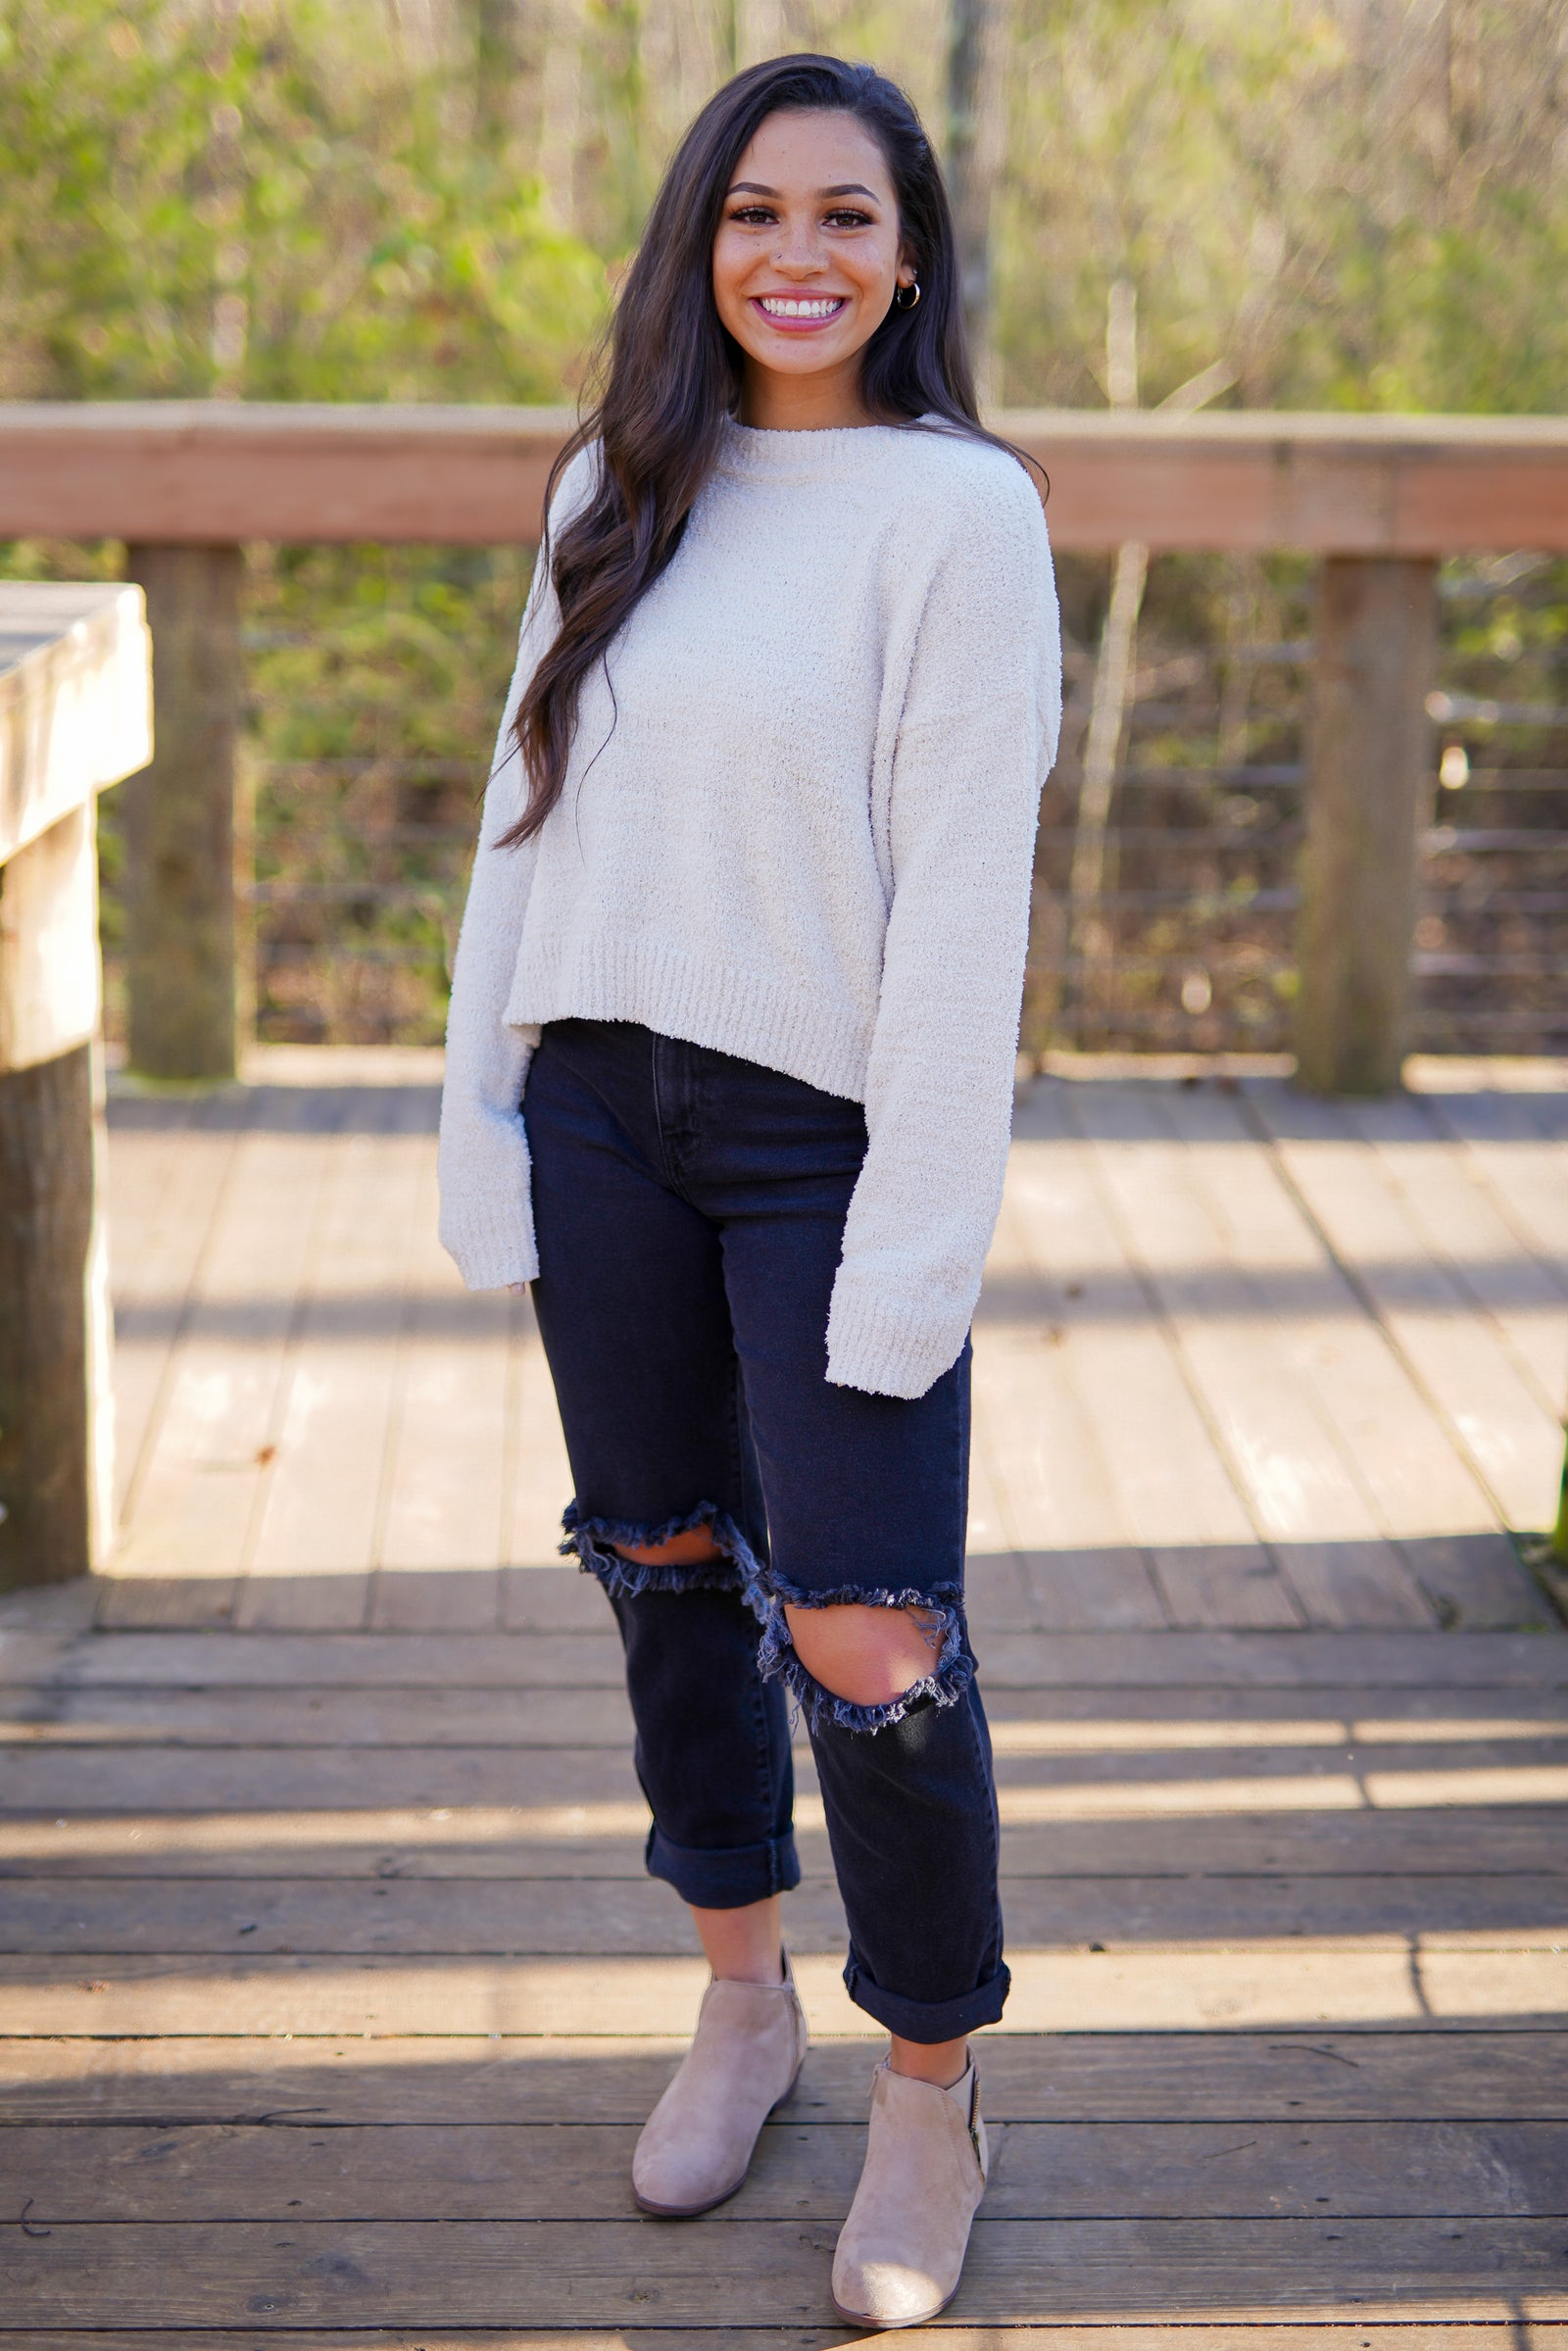 Cloud Cropped Sweater - Cream